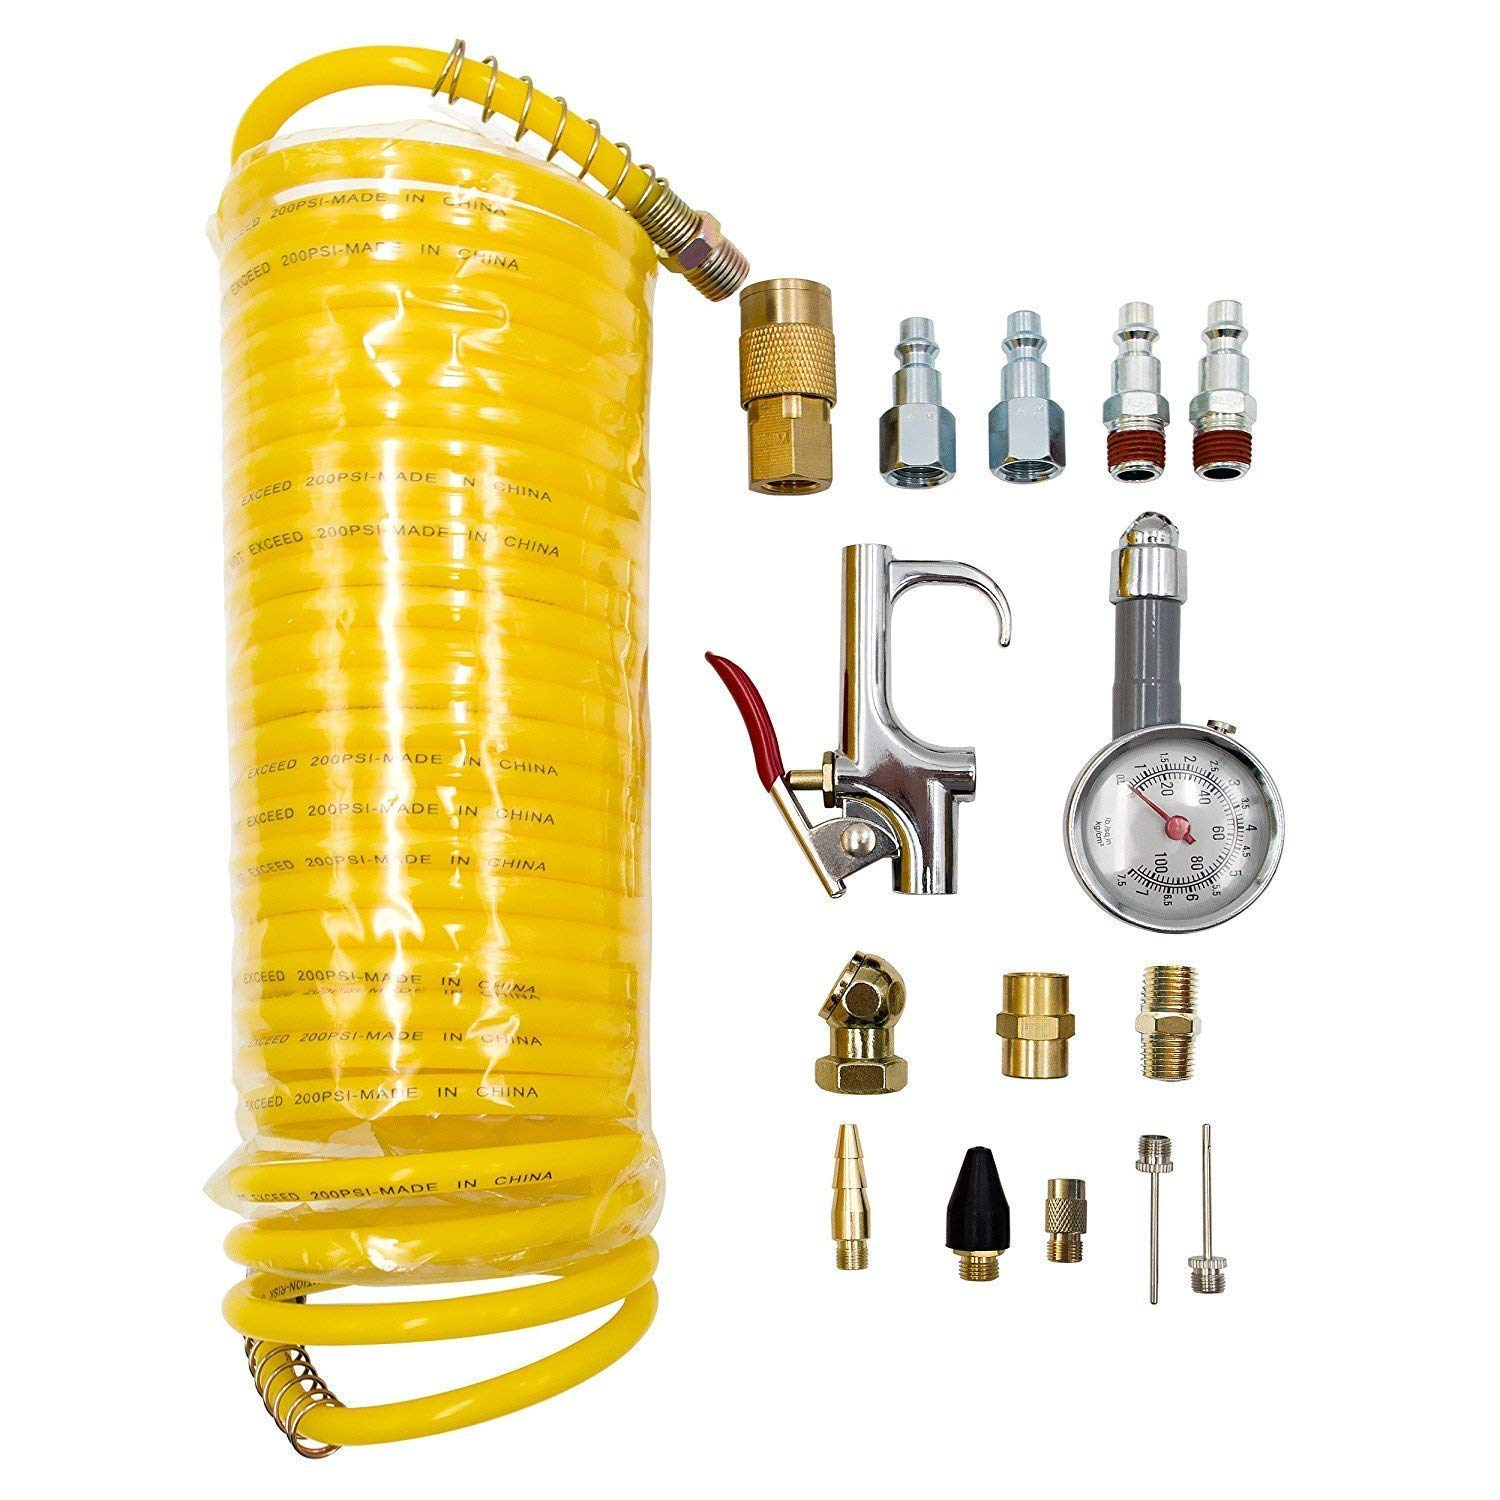 Vintage Air 31700-VBD Hose Kit with Drier